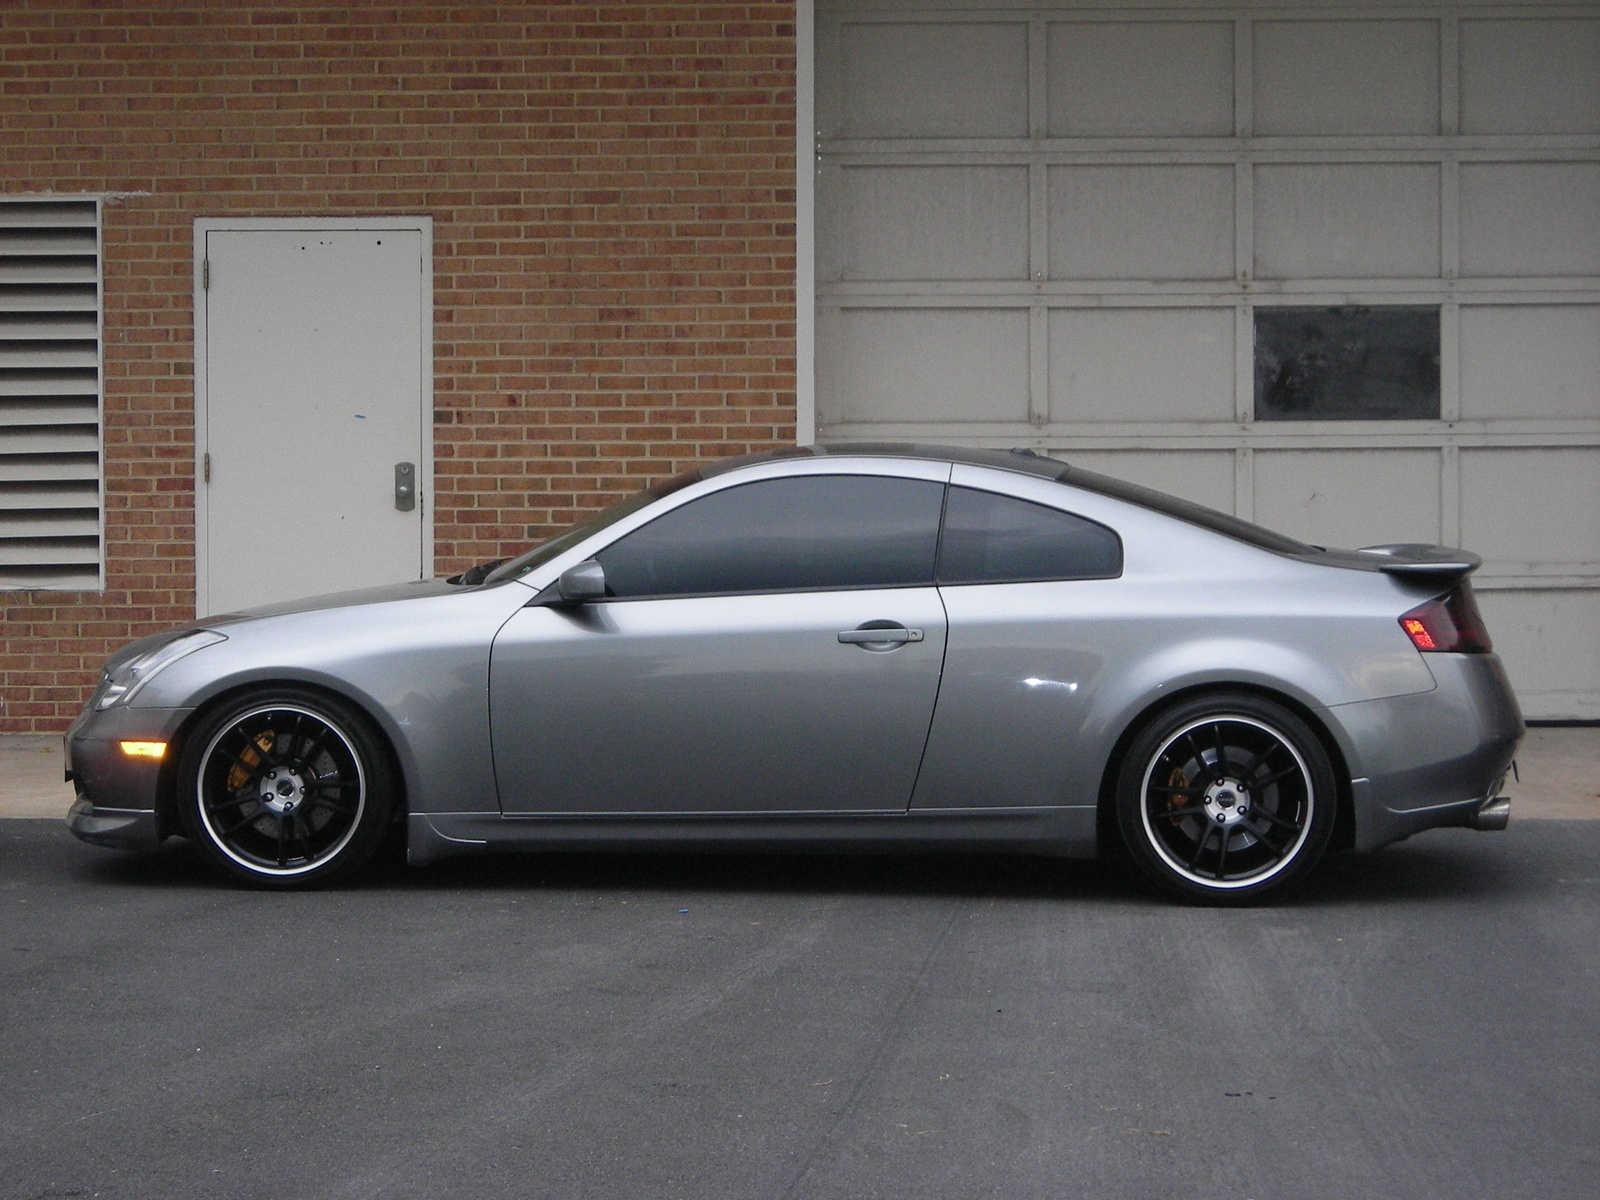 Infiniti g35 coupe related imagesstart 50 weili automotive network 2004 infiniti g35 coupe picture exterior vanachro Images